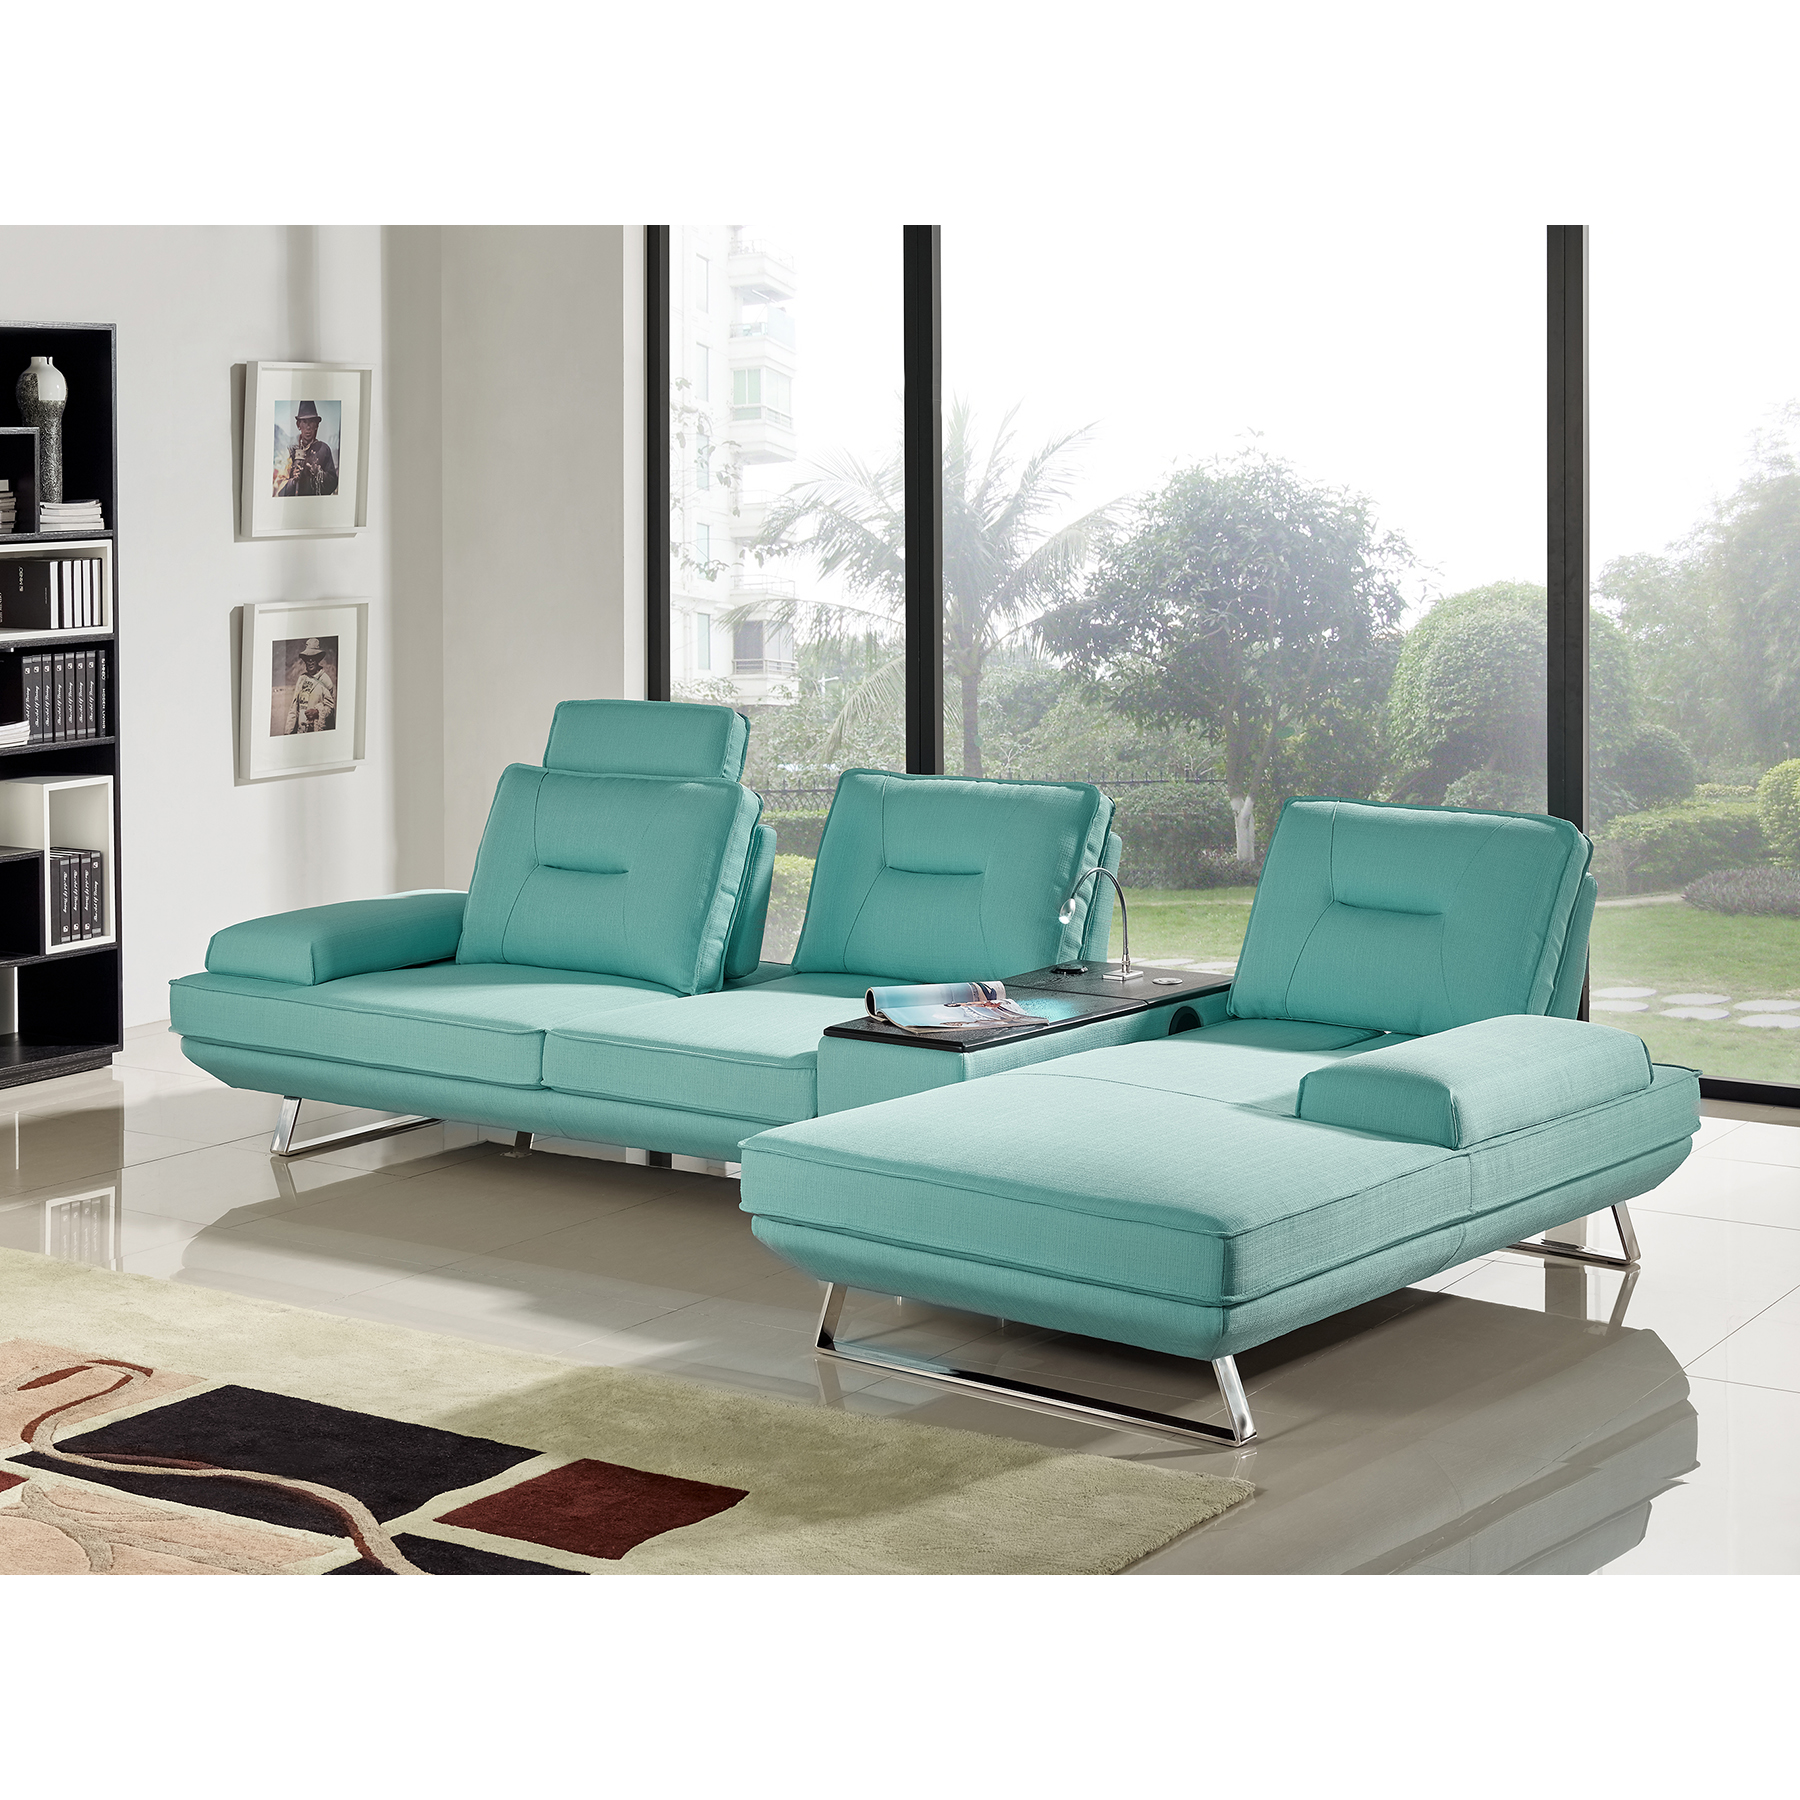 seafoam green sofa